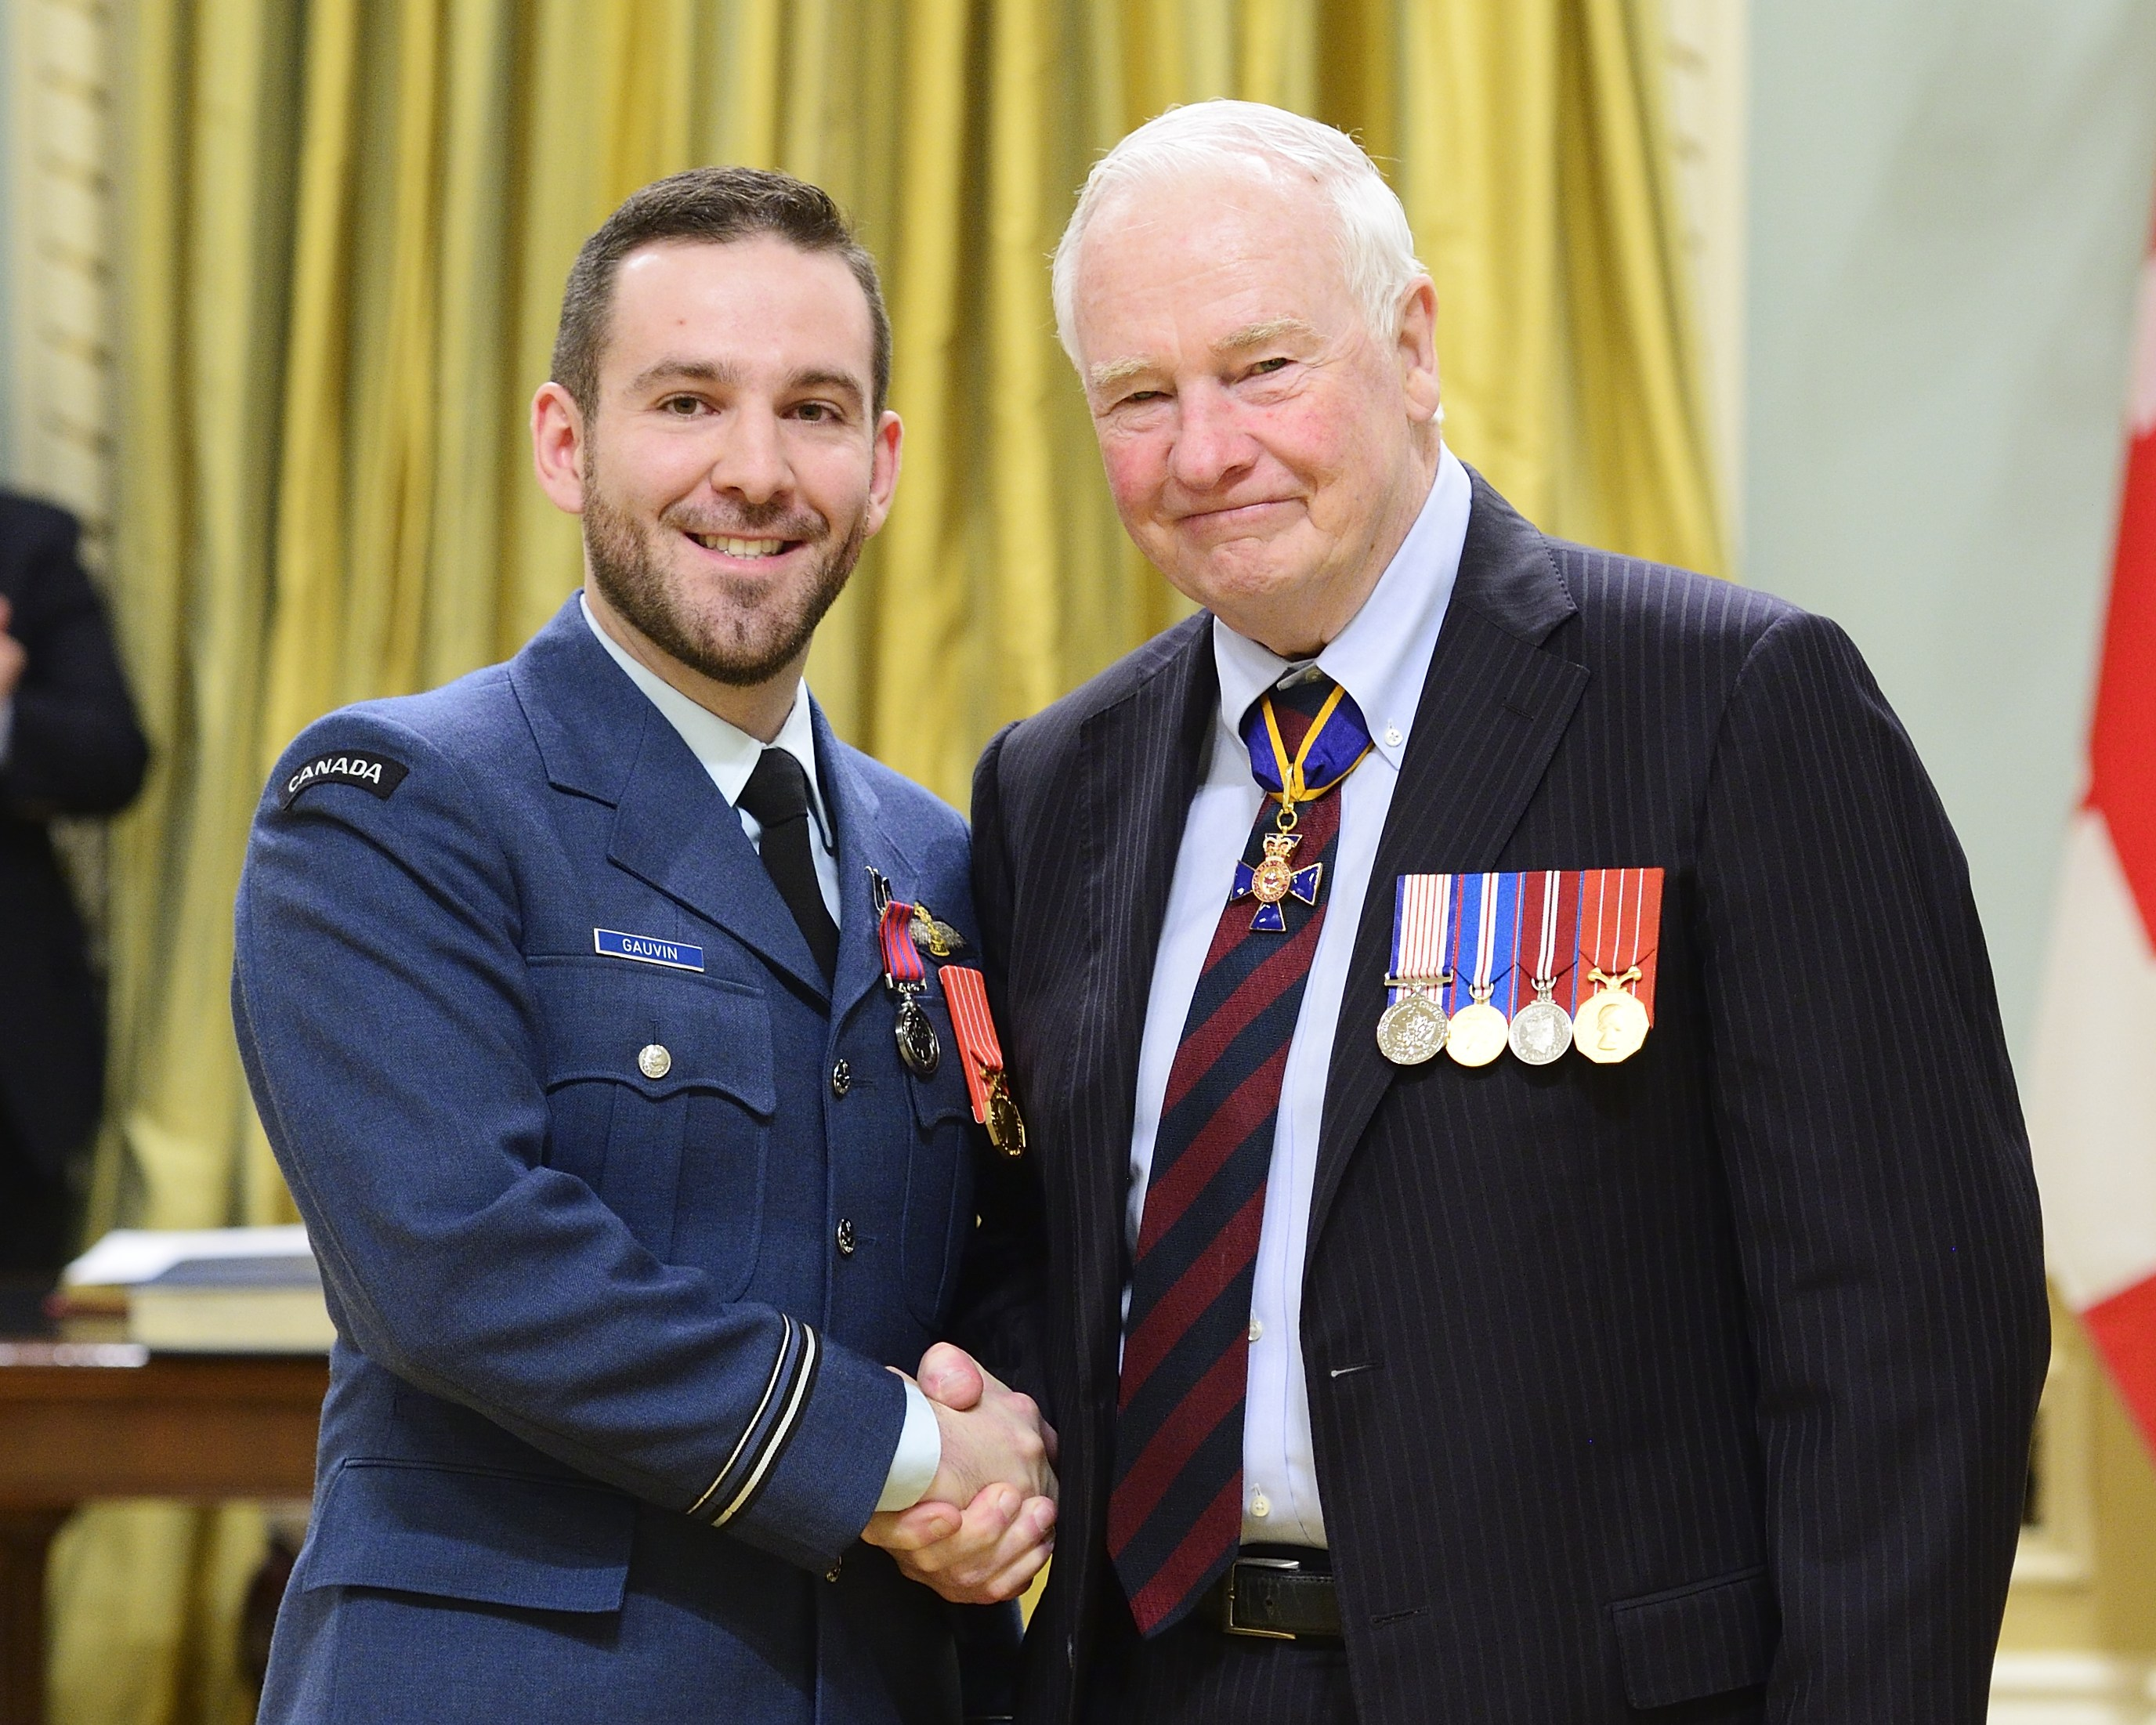 news governor hands honours military royal and standard canadian general force johnston air shake lieutenant david page decor template gauvin article decorations en